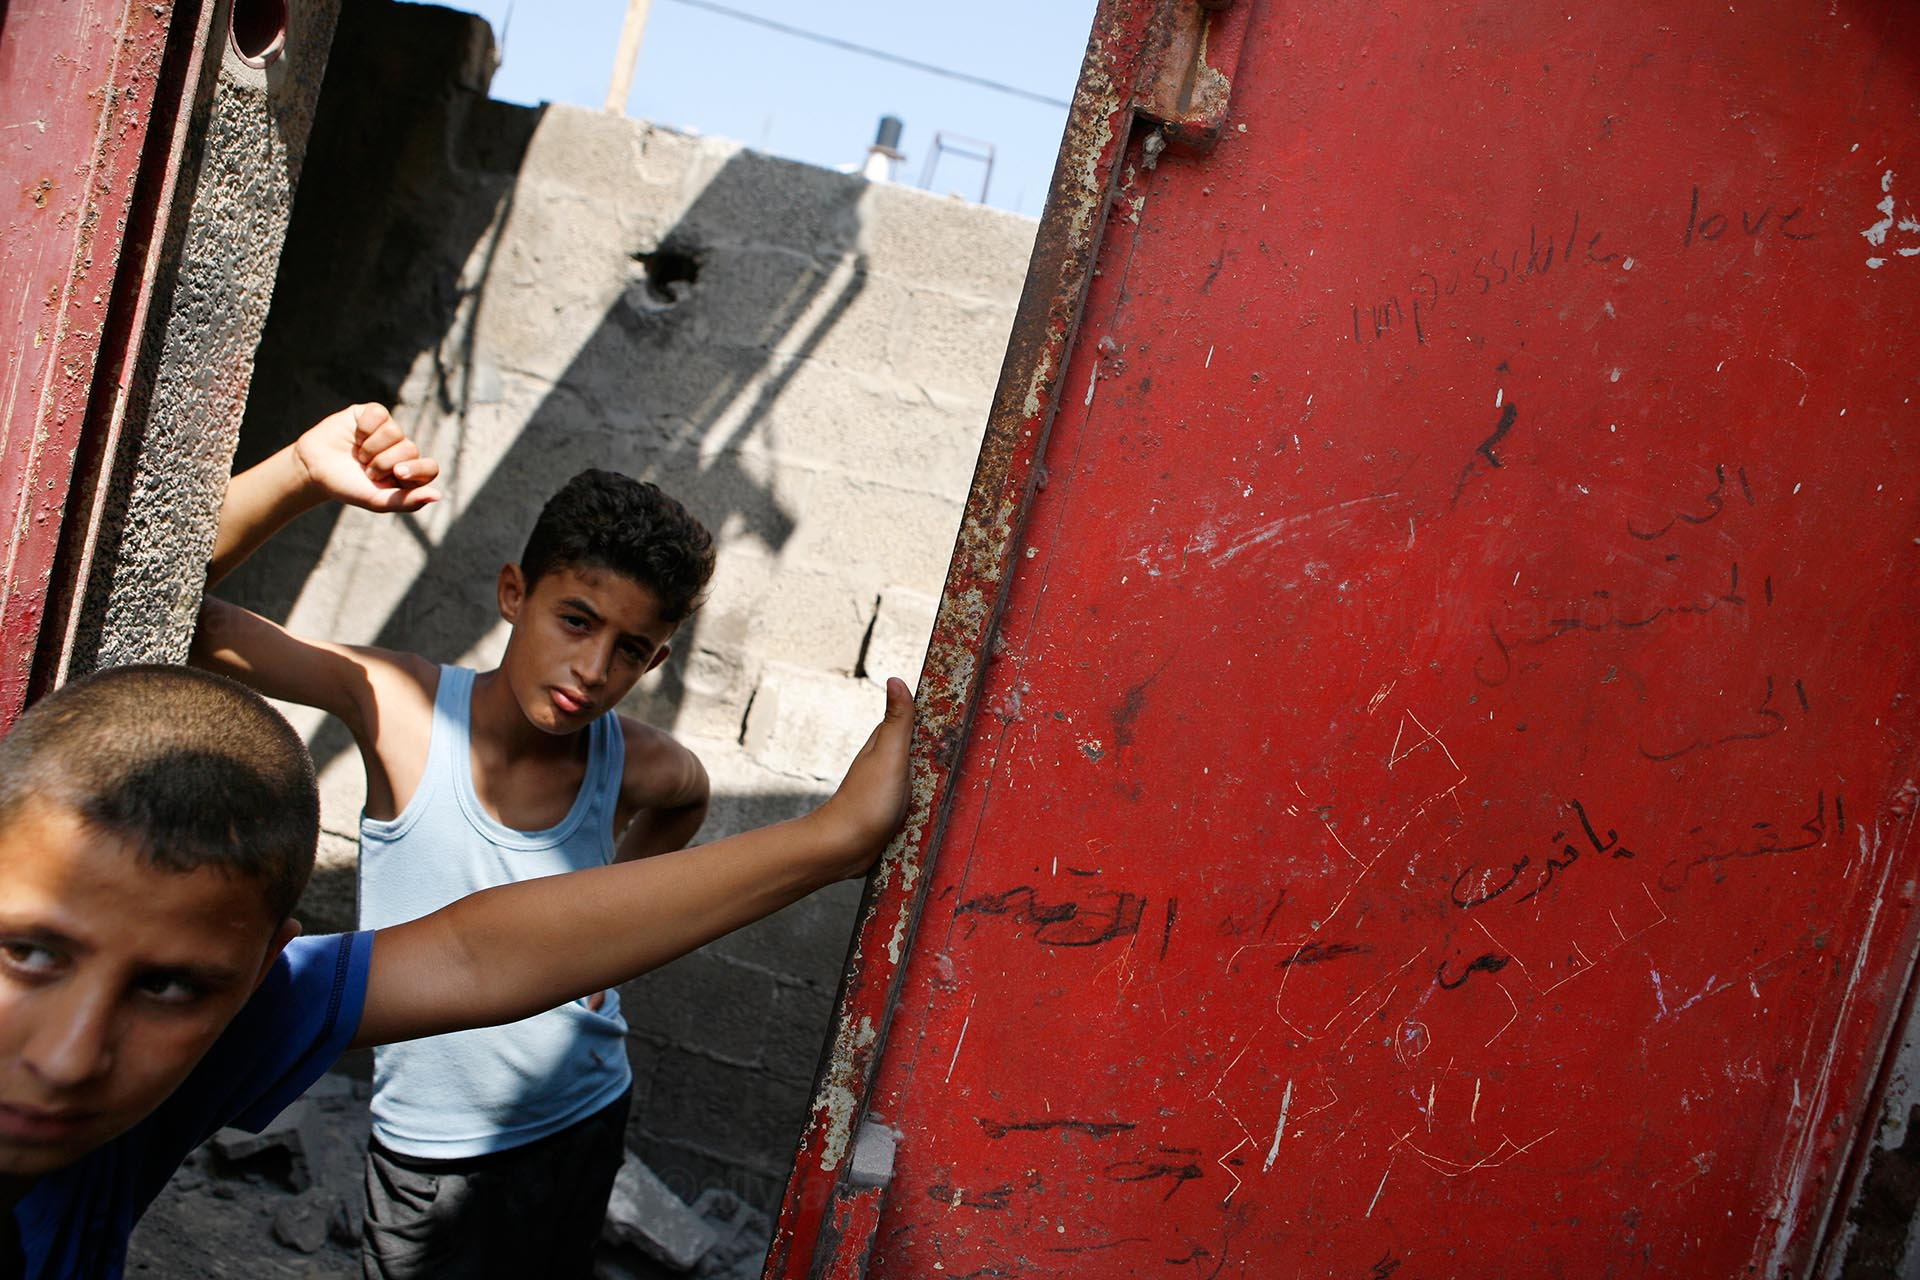 Children stand at the door of the Abu Bakhr home, which was bombed in the night. 'Impossible love' is written on the red metal door. Gaza, July 2014